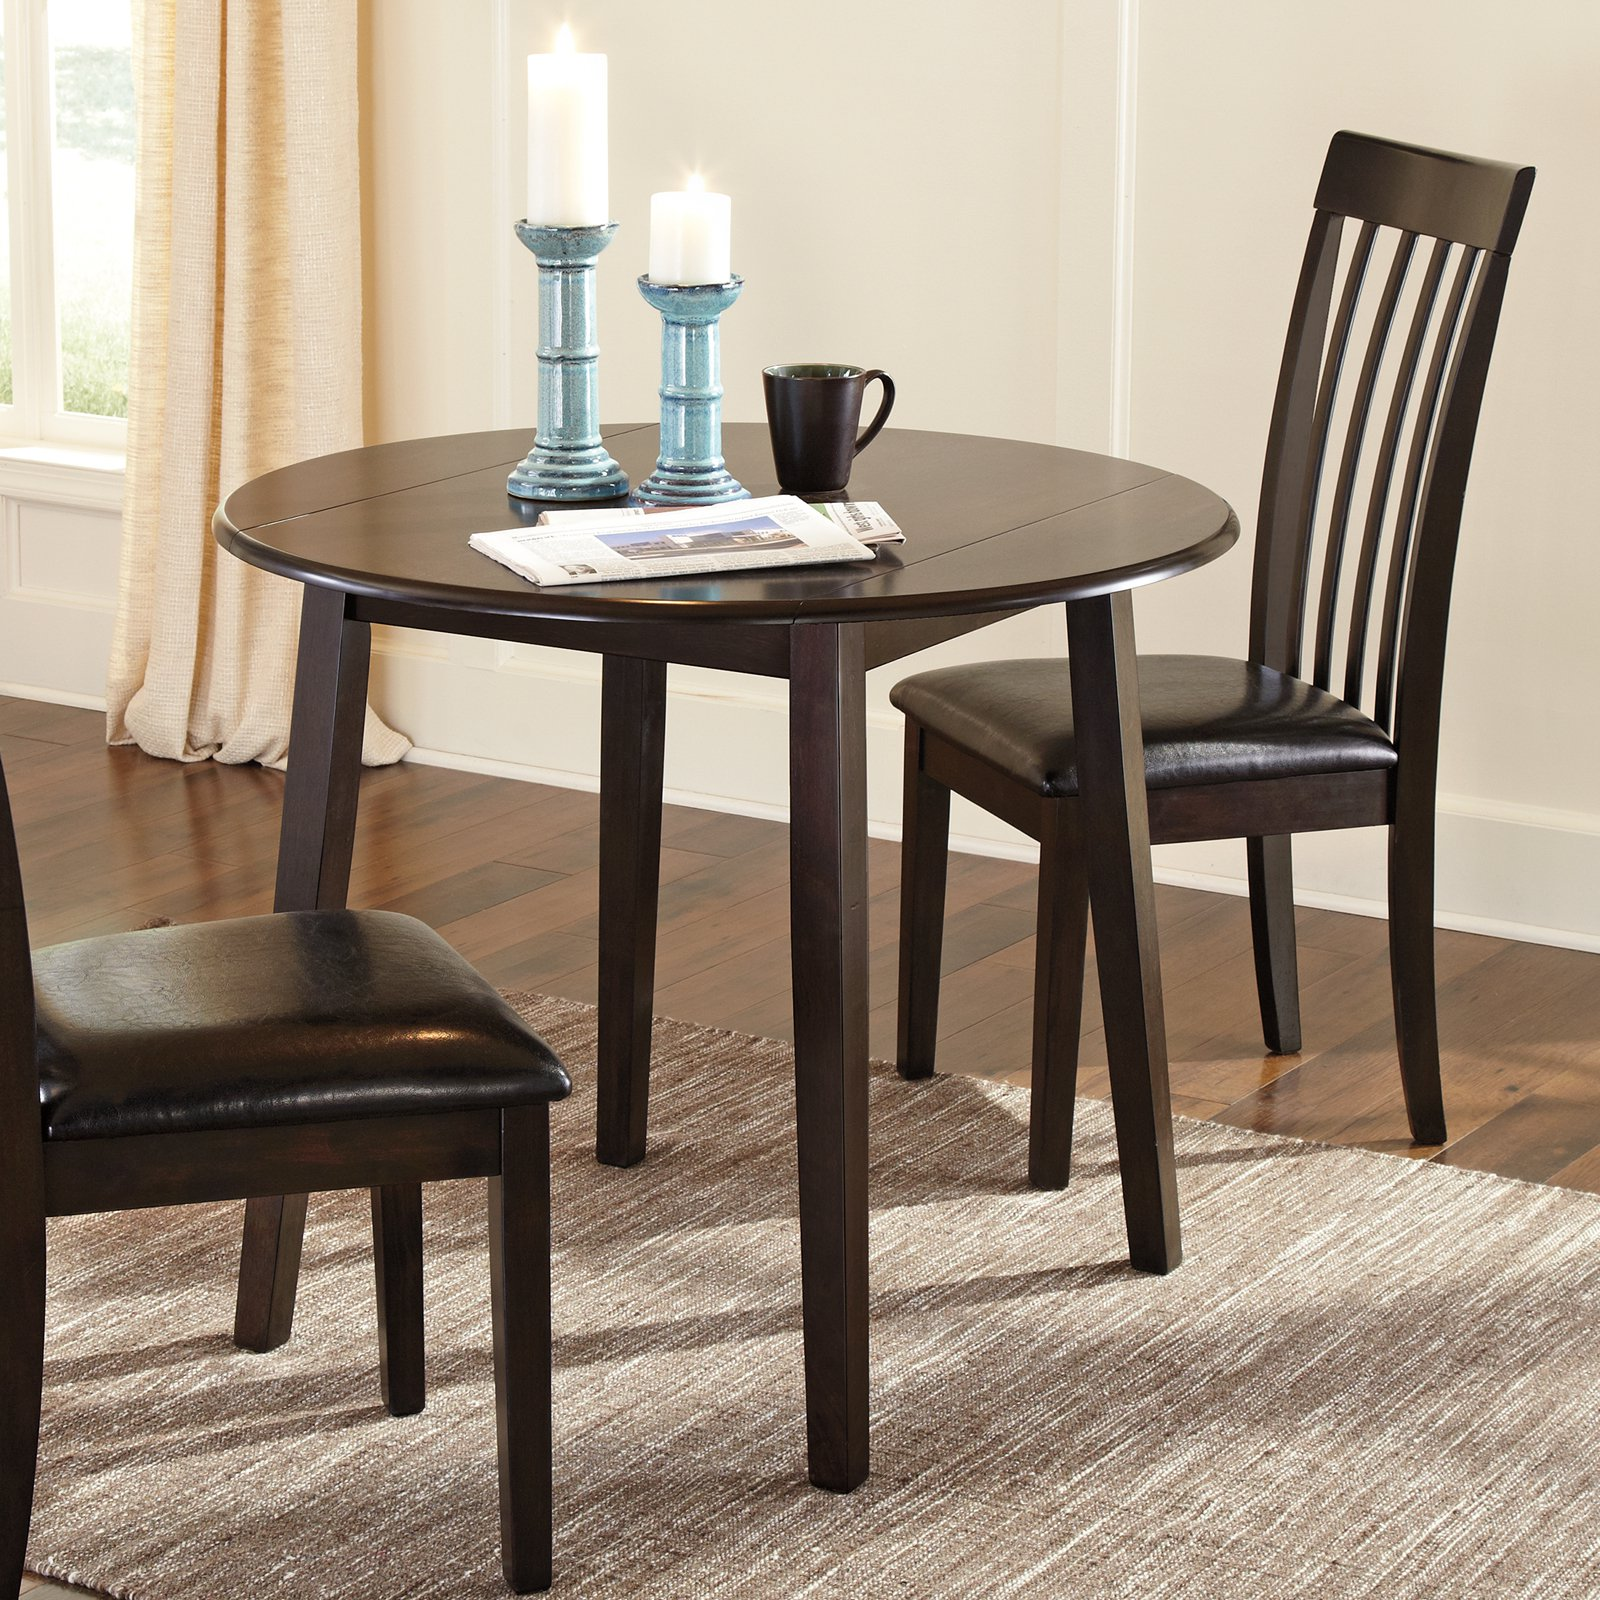 round dining table set. Signature Design By Ashley Hammis Round Dining Table Set